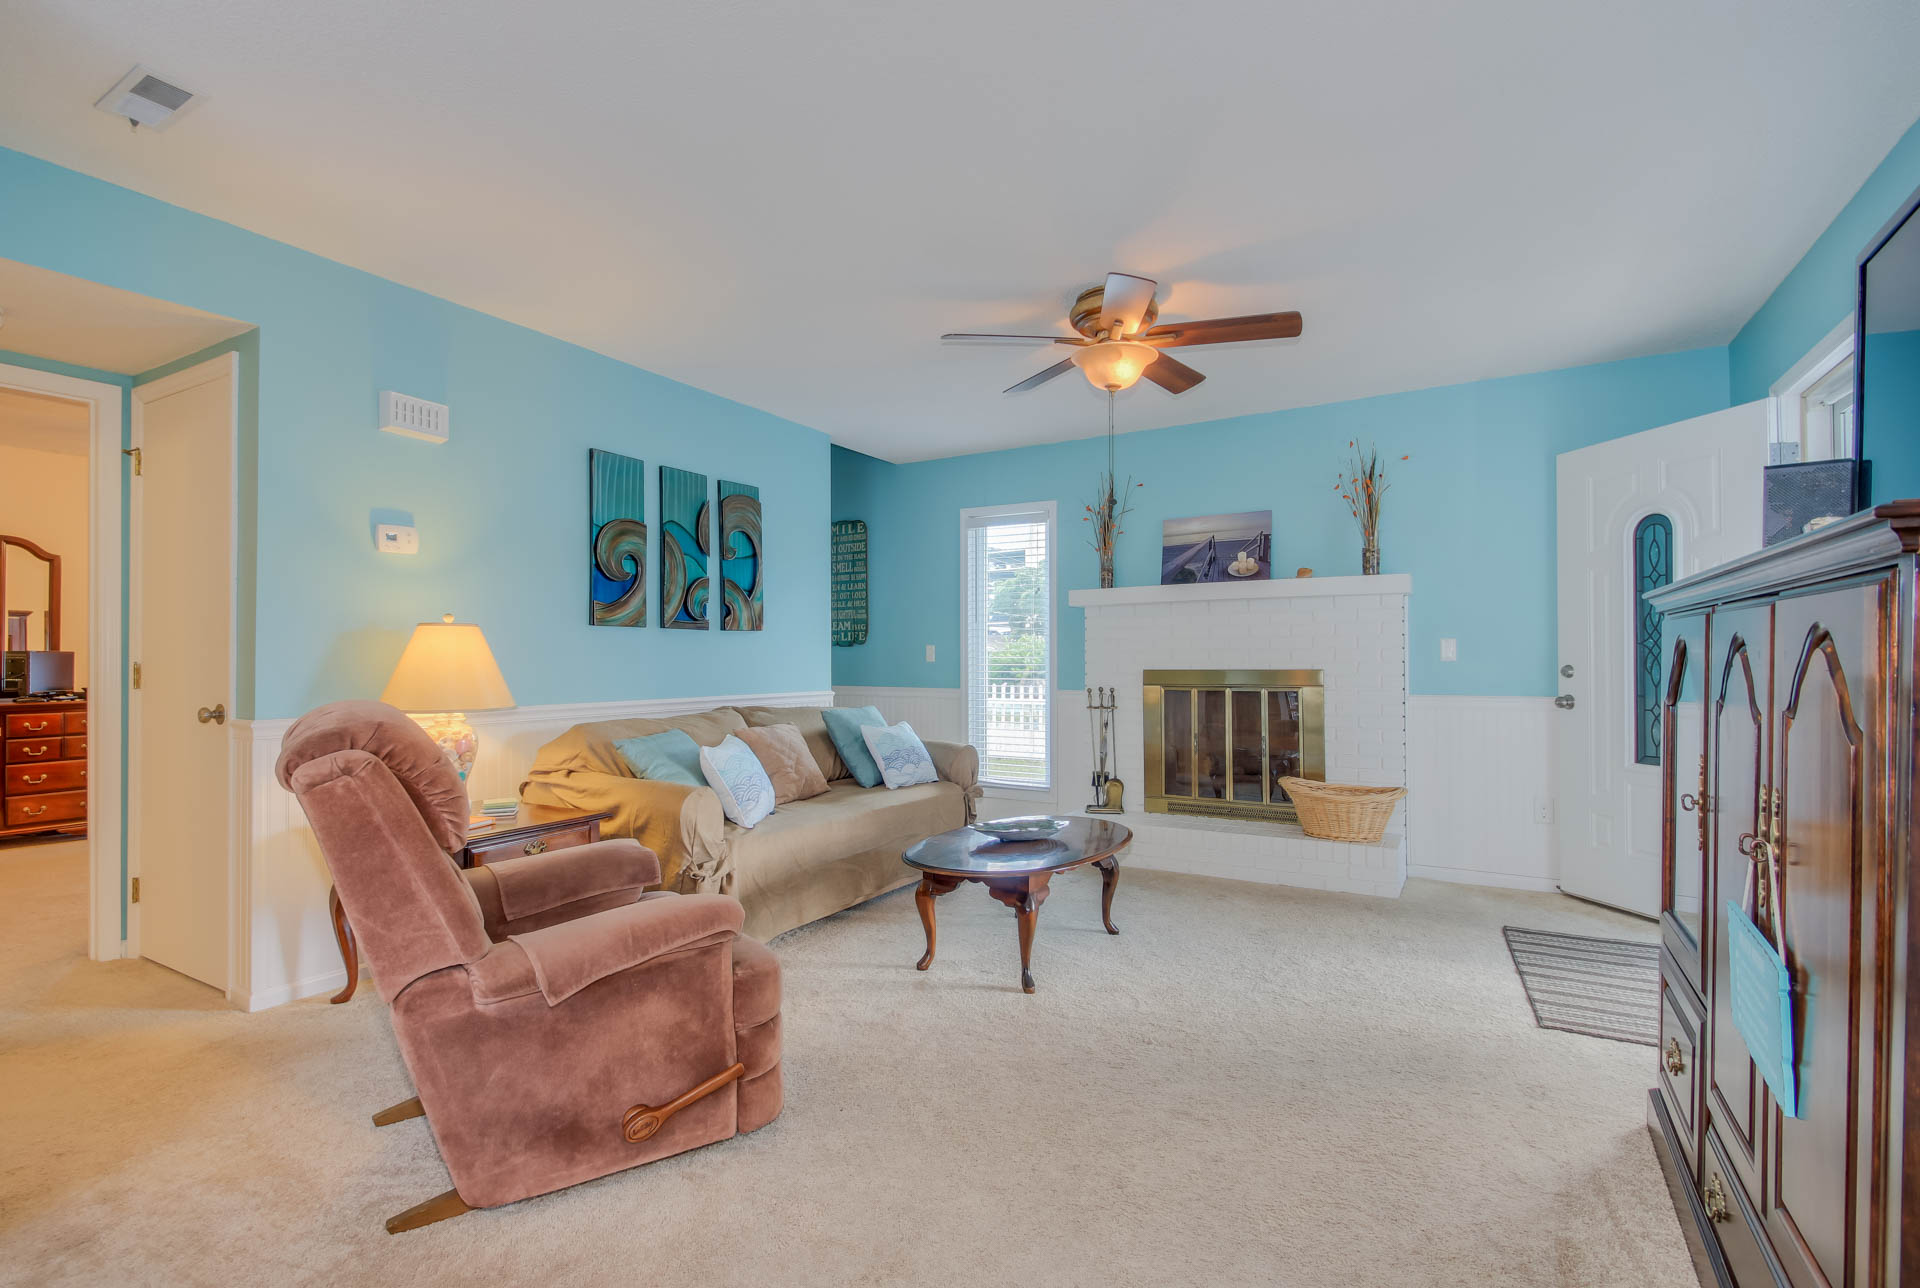 Sunny U0026 Chair 3900A Vacation Rental In North Myrtle Beach   RedAwning